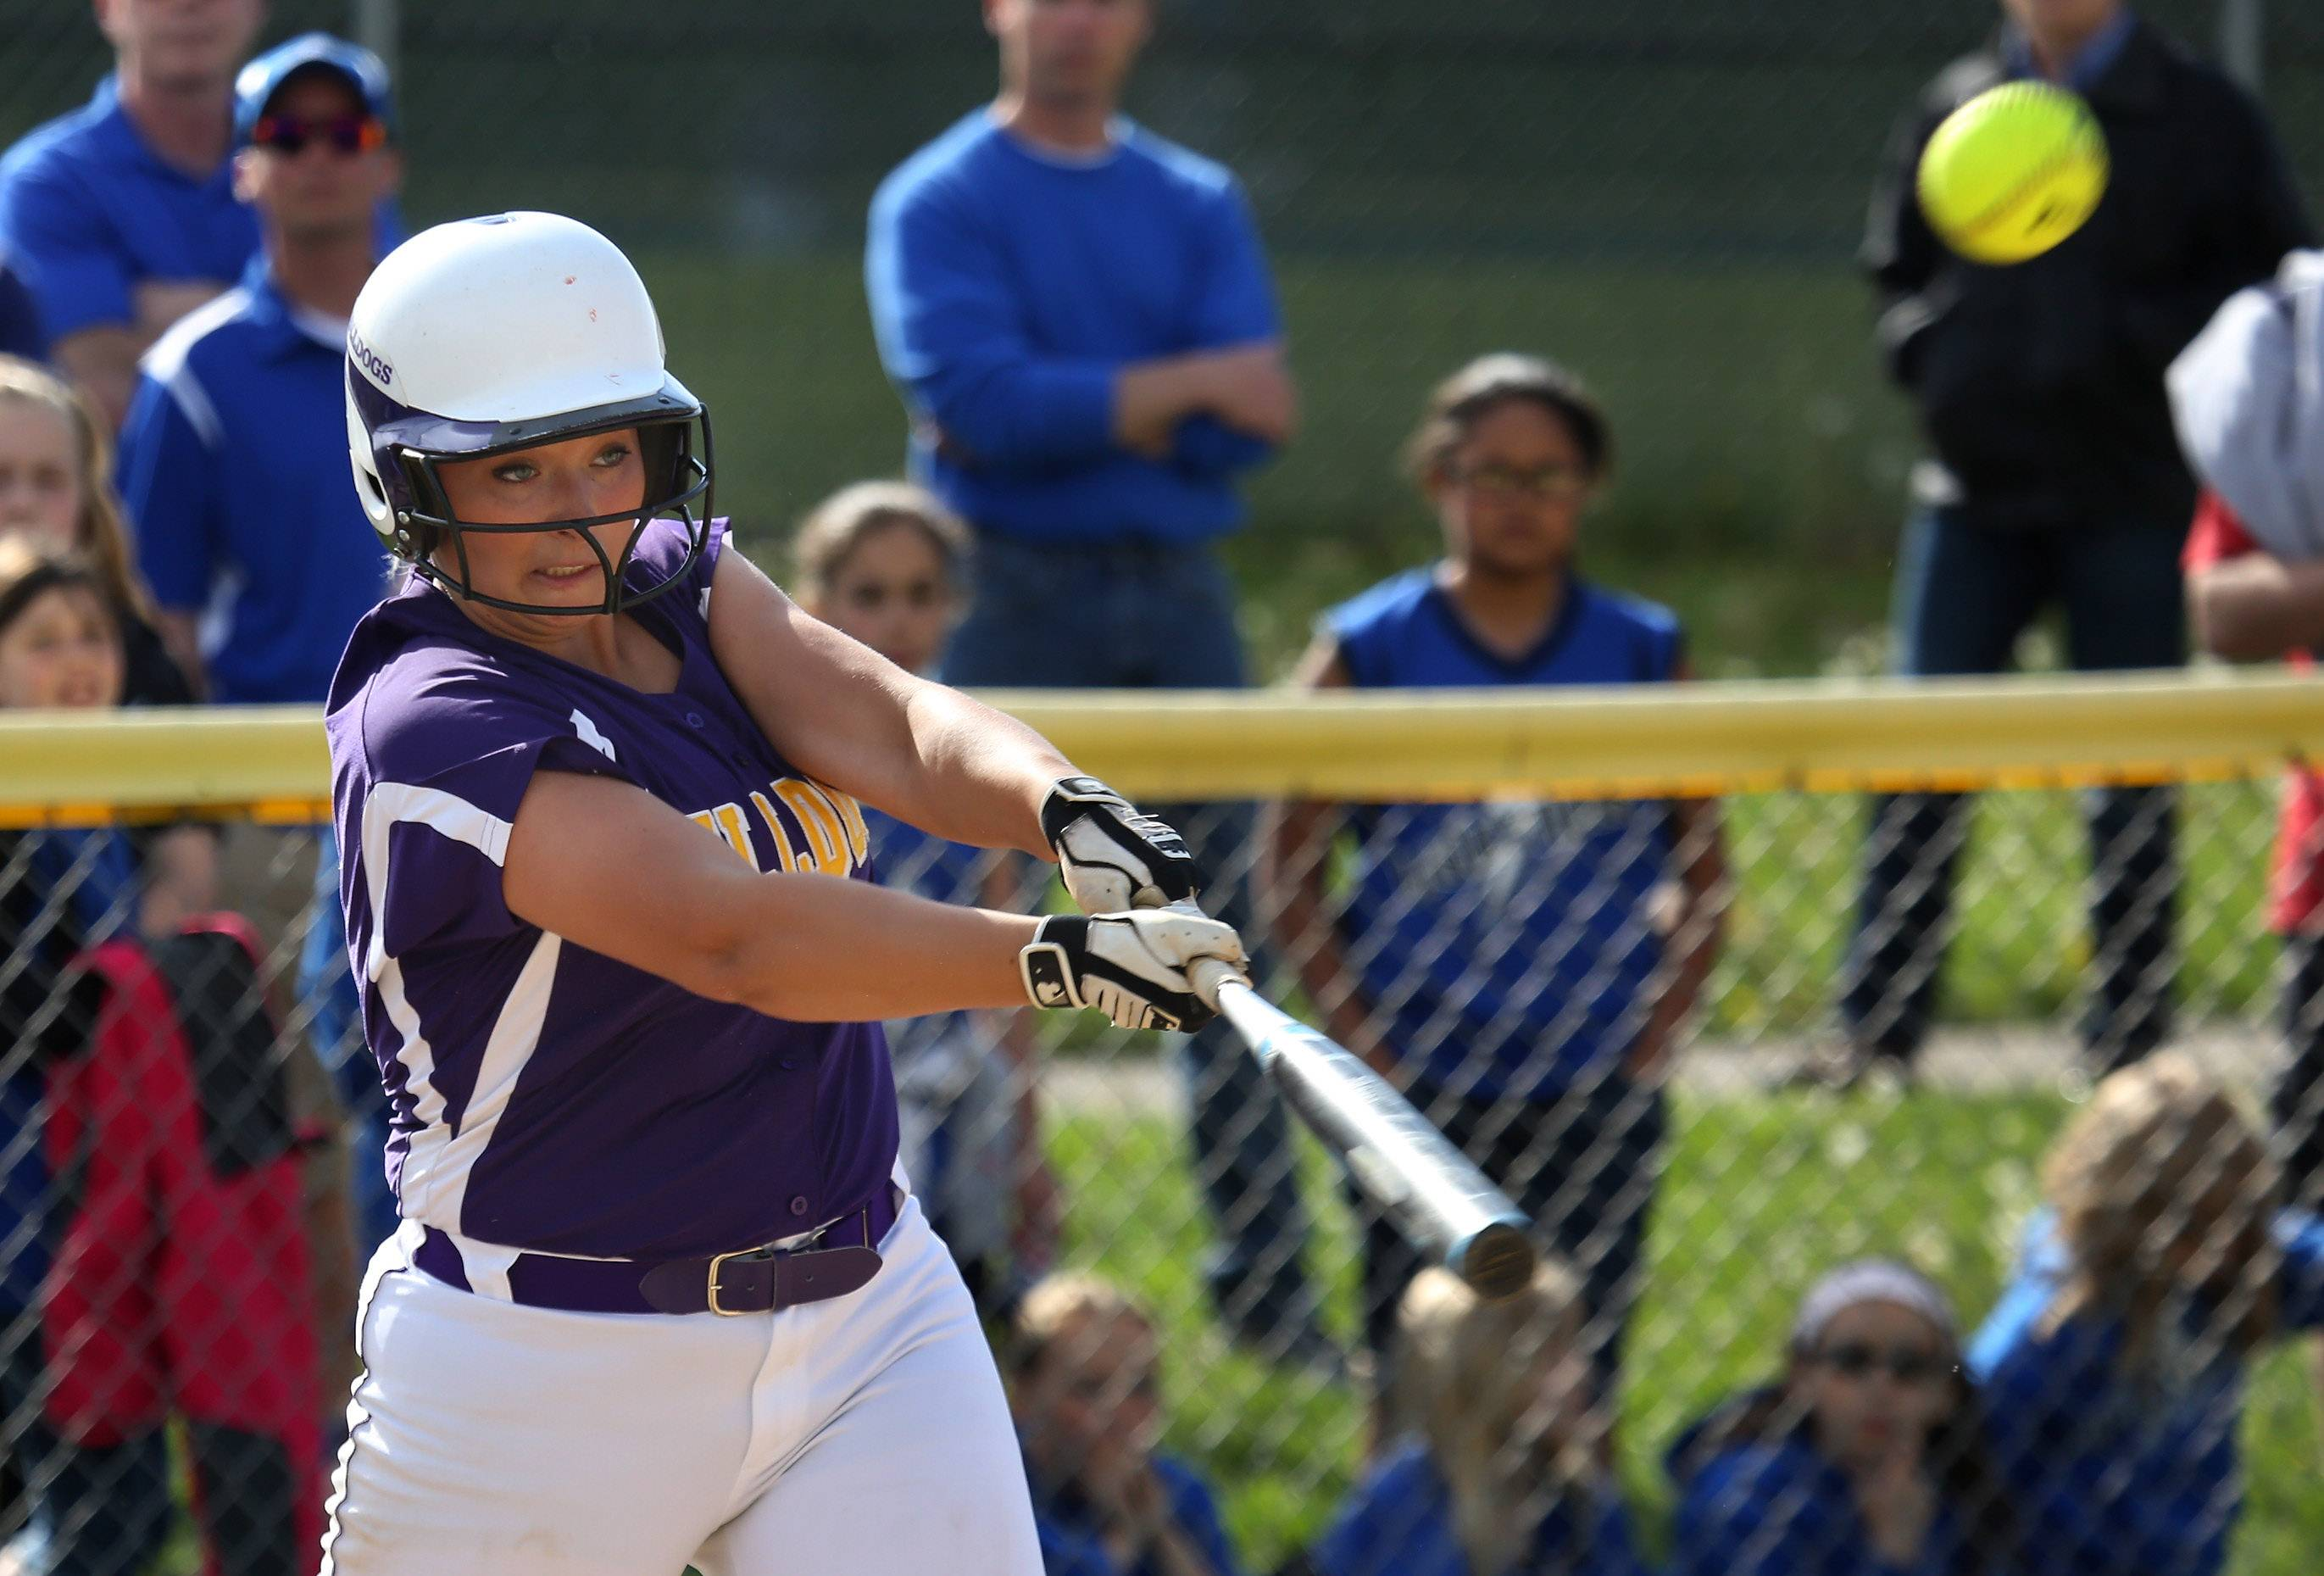 Wauconda batter Angie Exline hits a double in the second inning during Thursday's NSC championship game at Wauconda.